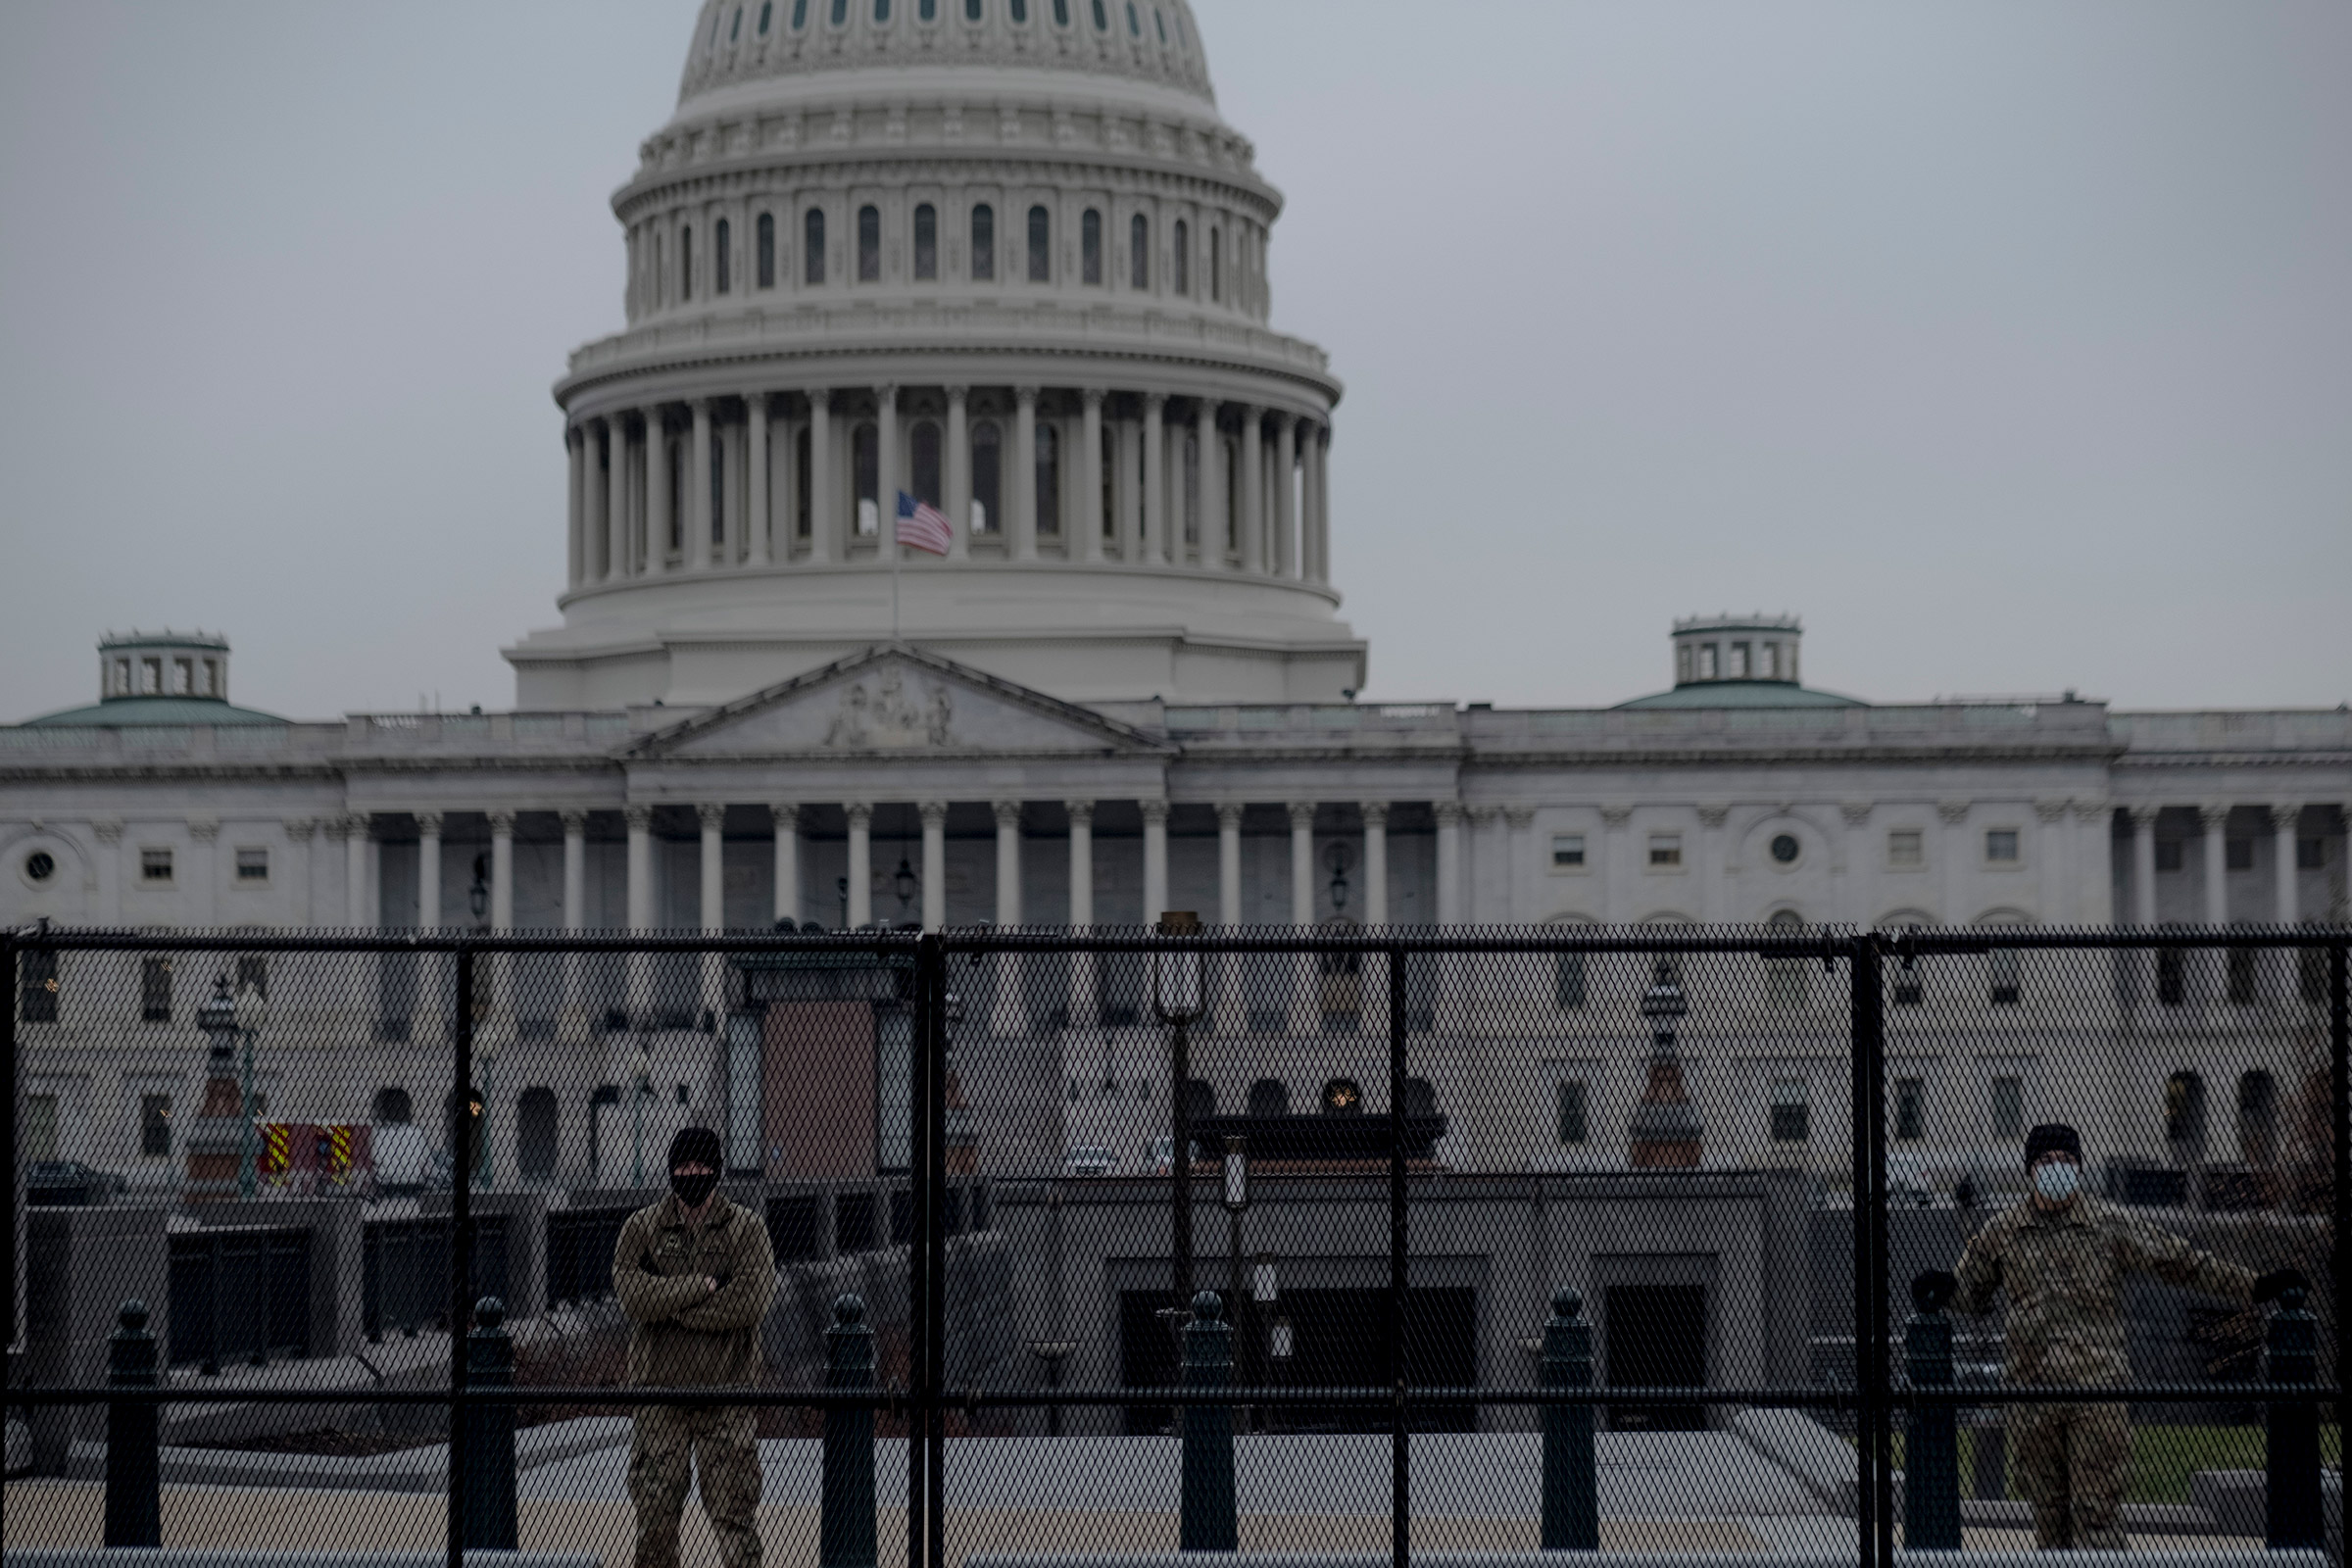 Members of the National Guard form a perimeter around the Capitol in Washington, on Jan. 11, 2020.